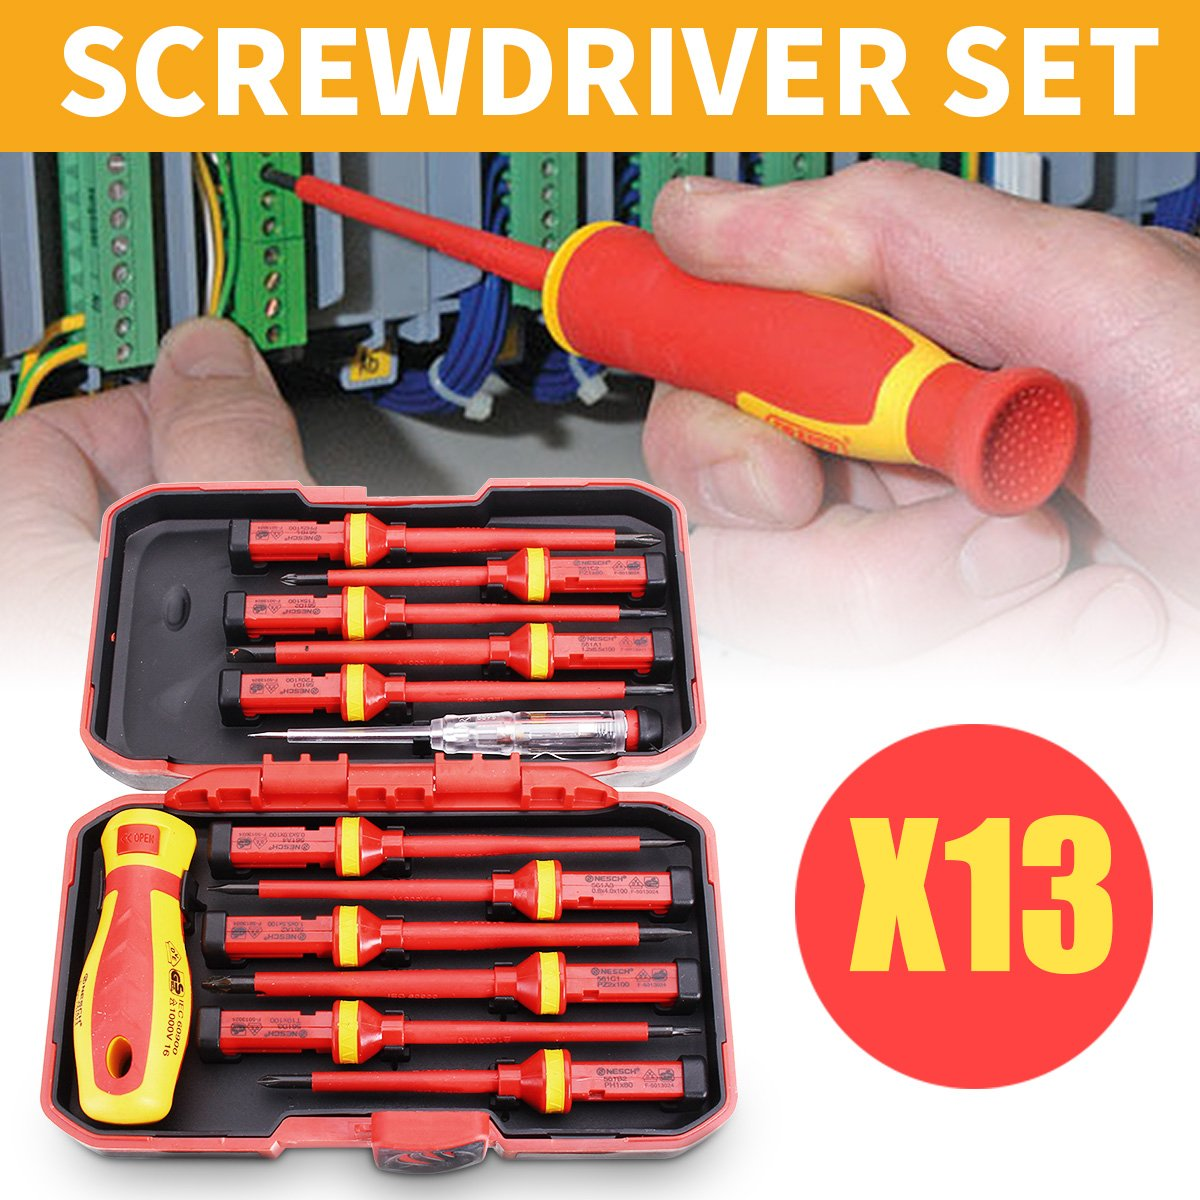 '13Pcs 1000V Electronic Insulated Screwdriver Set Phillips Slotted Torx CR-V Screwdriver Hand Tools' by Kowloon Tool Set